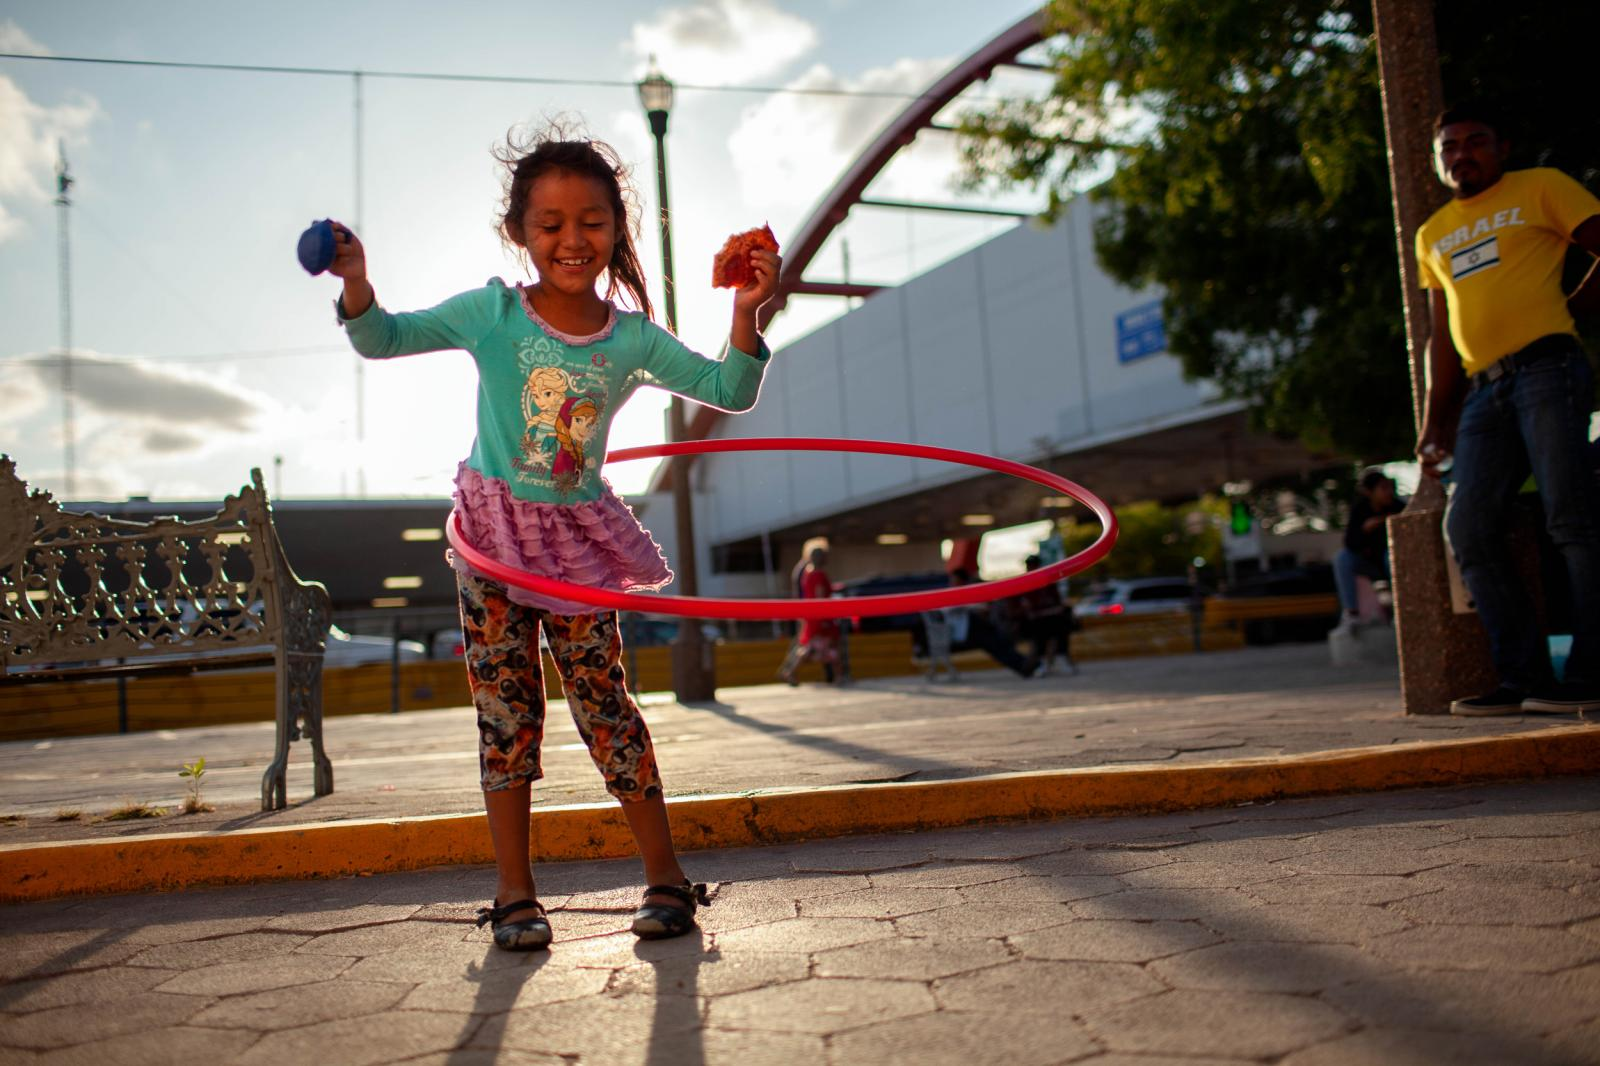 At the base of the International Bridge in Matamoros, Mex, in 2019, families camp, unsheltered for weeks to cross into the United States to have their chance to claim asylum. Here, a girl from Honduras plays with a hula hoop brought by volunteers. Her family waited for a month before being able to cross and join relatives in San Antonio, Tex.